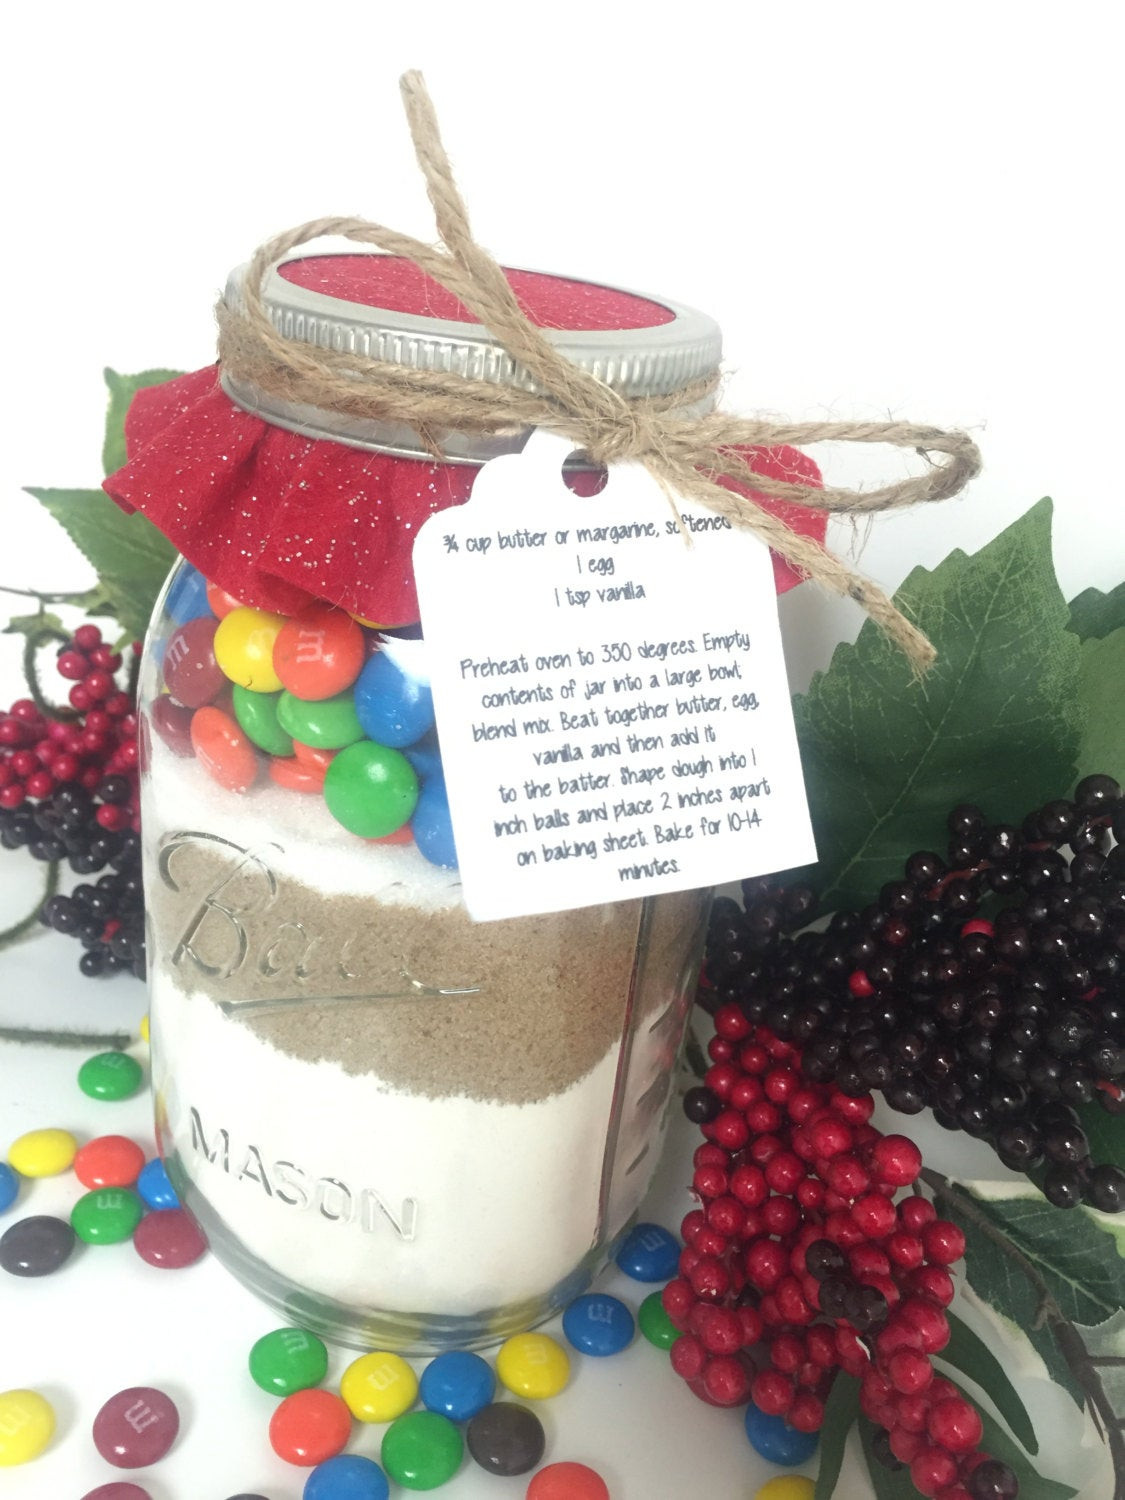 Mason Jar Christmas Cookies  Mason Jar Cookie Mix M&M Chocolate Chip Cookies Christmas